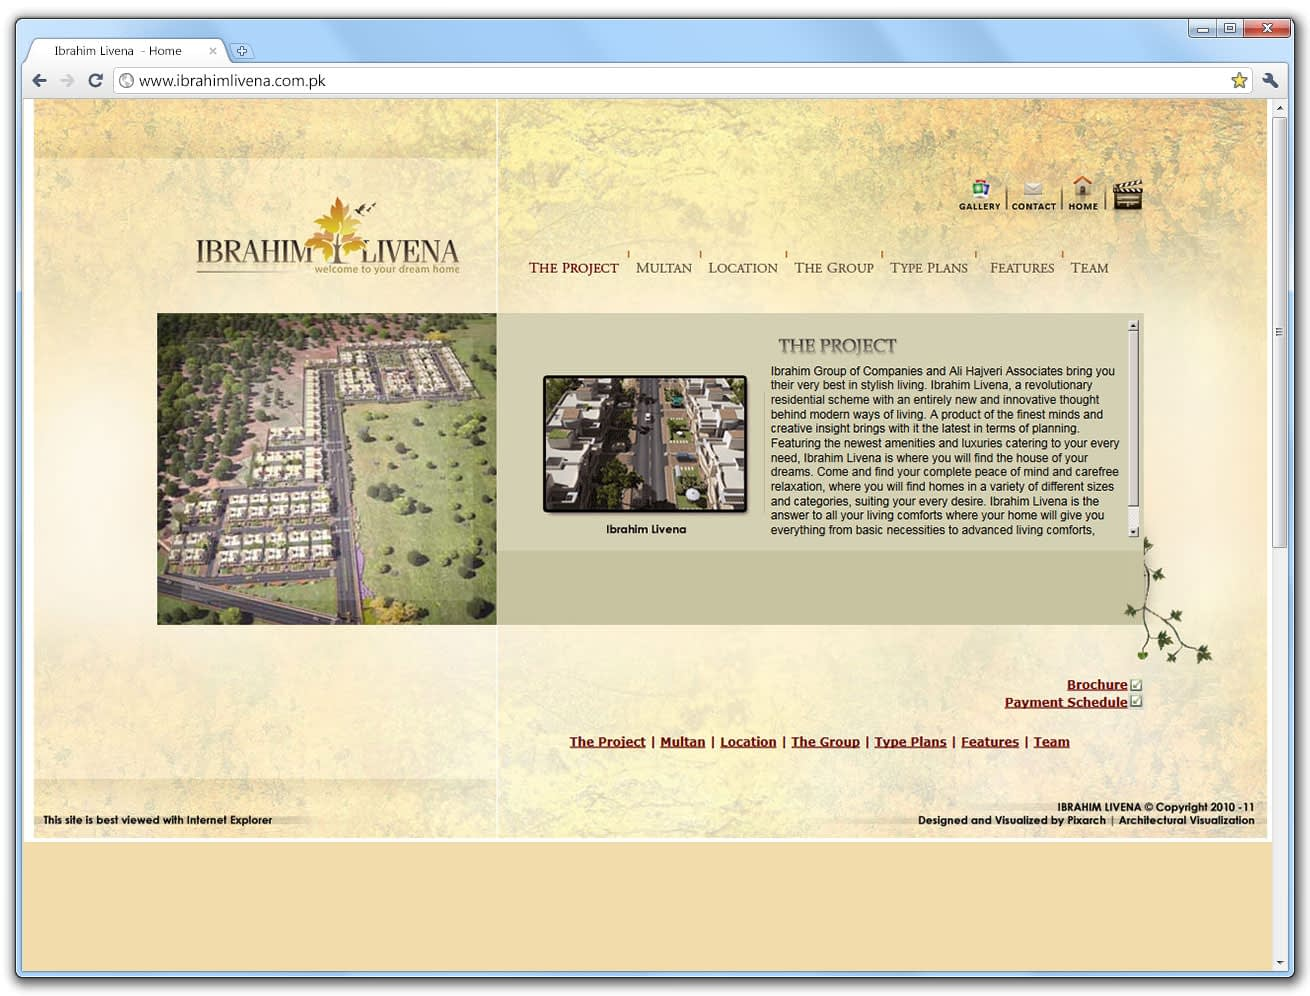 ibrahim website | Pixarch